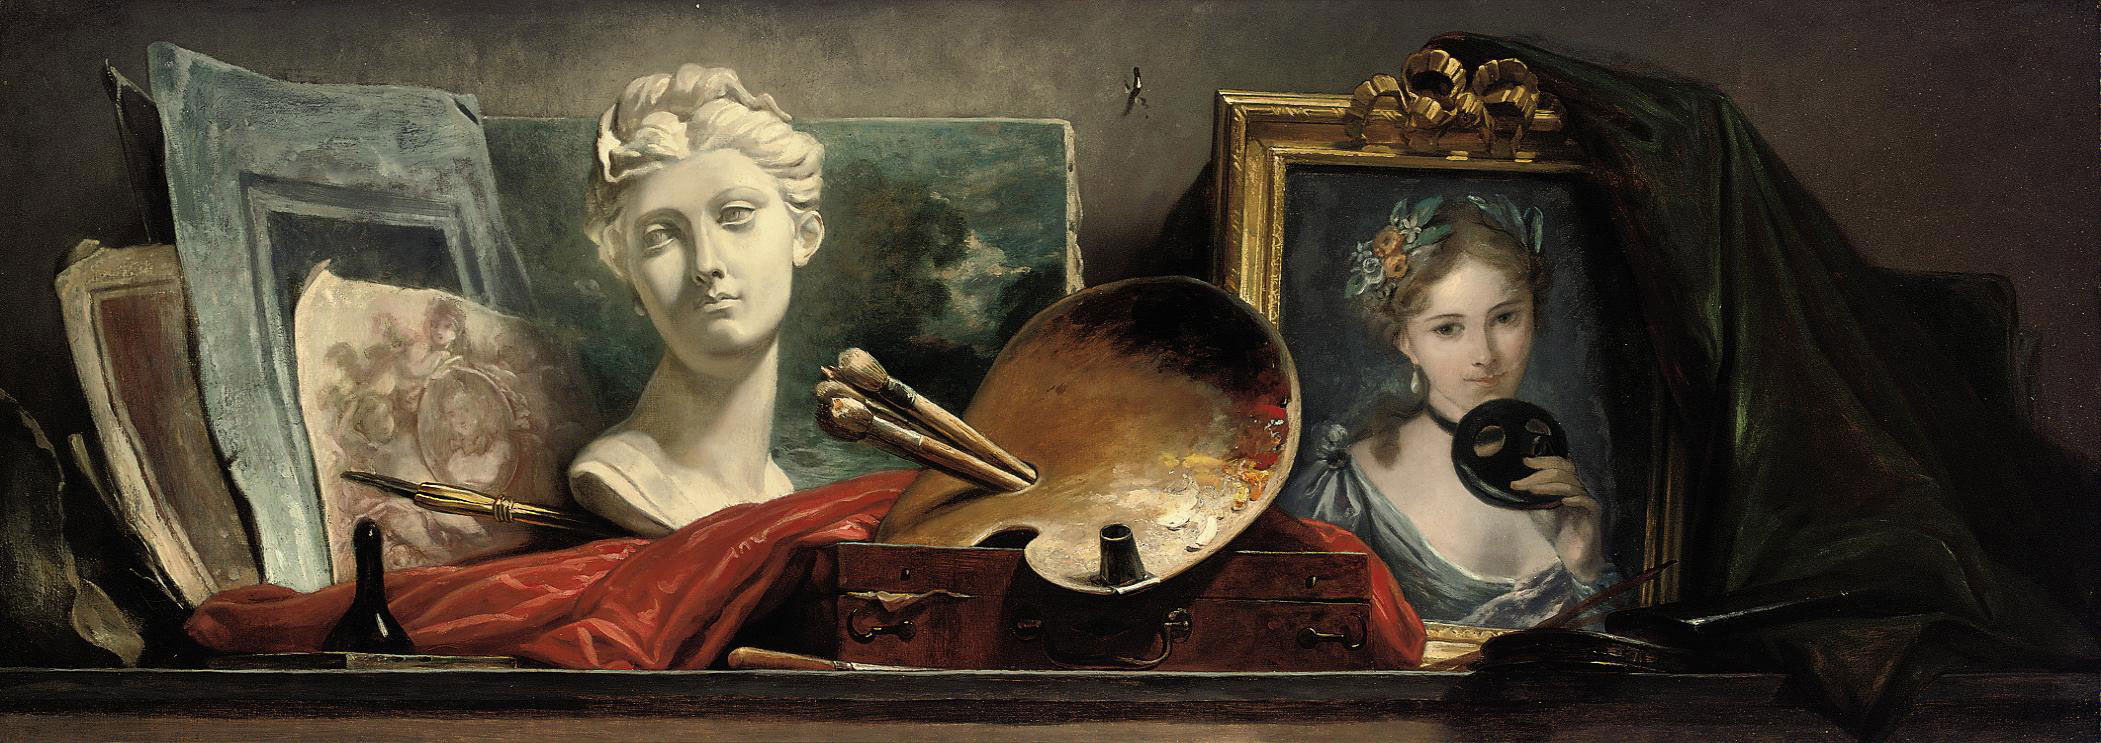 A trompe-l'oeil still life of a portrait of a young lady holding a mask, a sculpted marble bust, a palette with paints and brushes, a leather paintbox and other unfinished sketches and canvasses on a long work table.